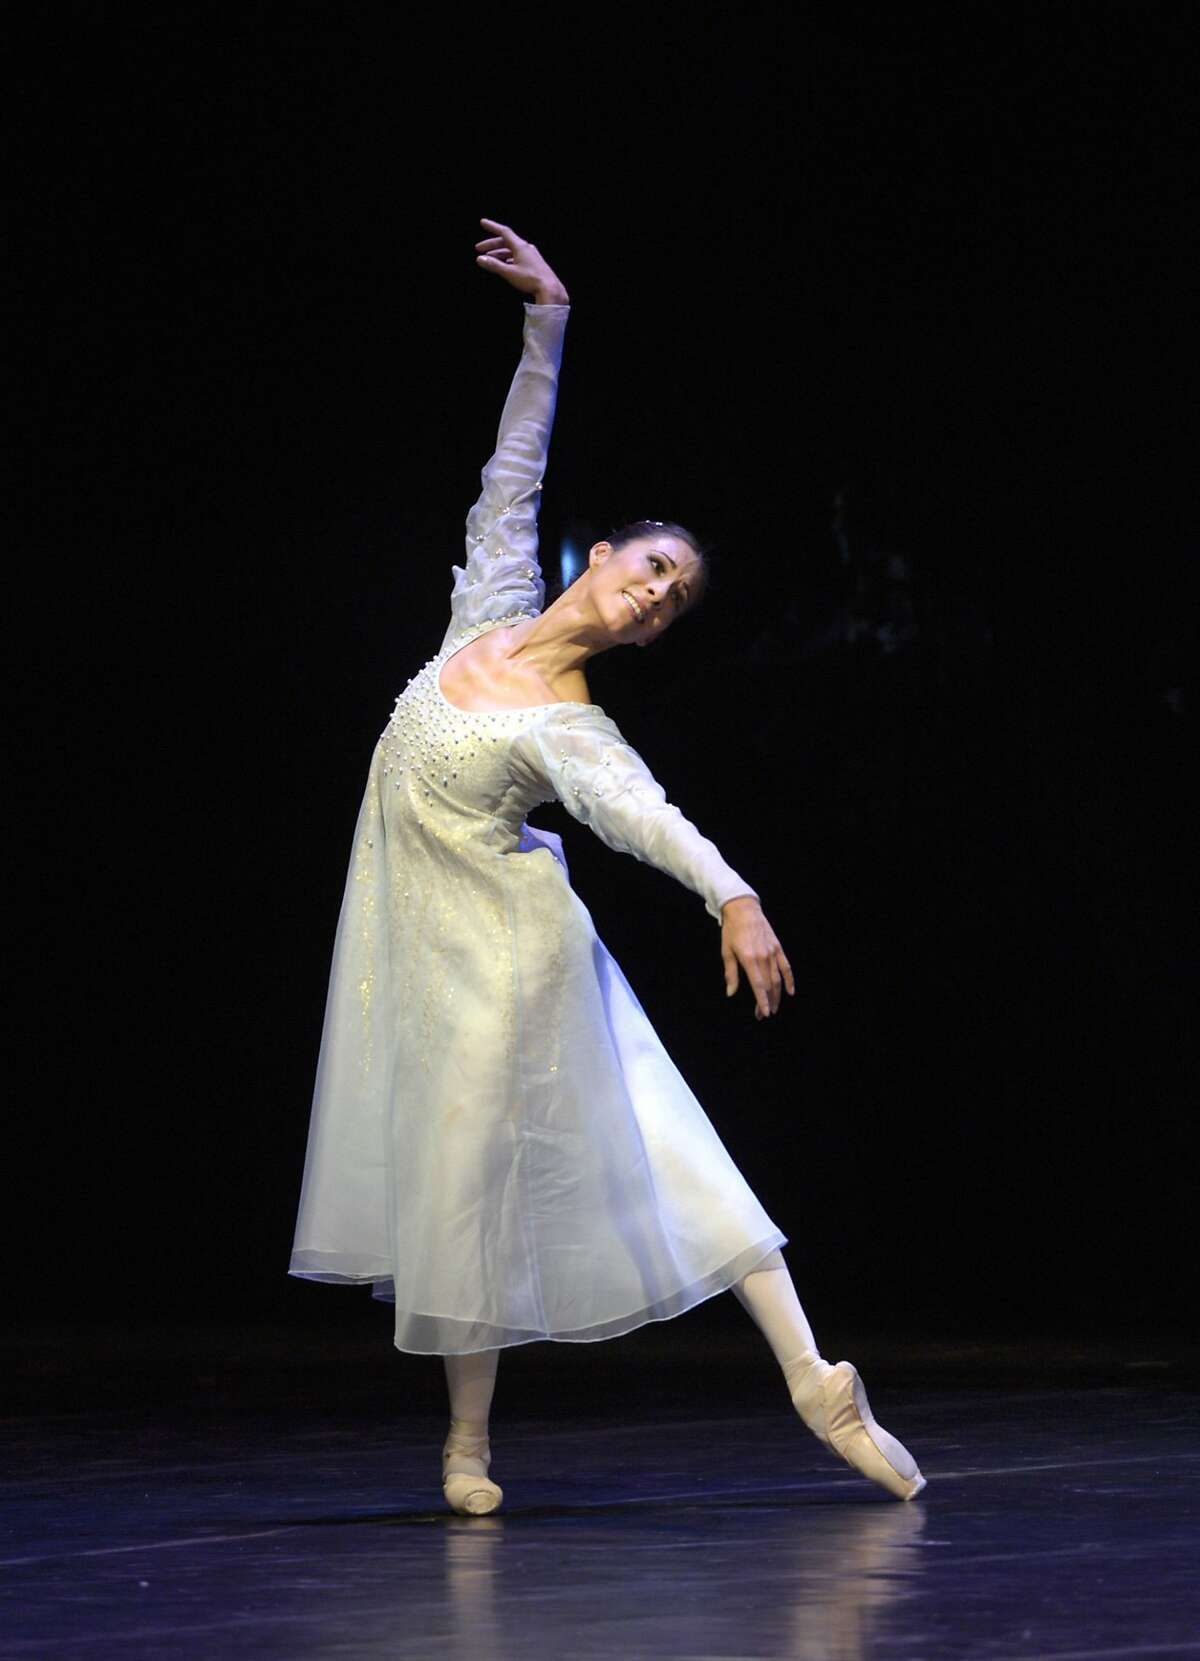 Ballerina Elisa Carillo will dance at the Yerba Buena Center for the Arts Theater in the July 31 opening gala of the MEX I AM Festival of Mexican contemporary arts. Photo Courtesy MEX I AM